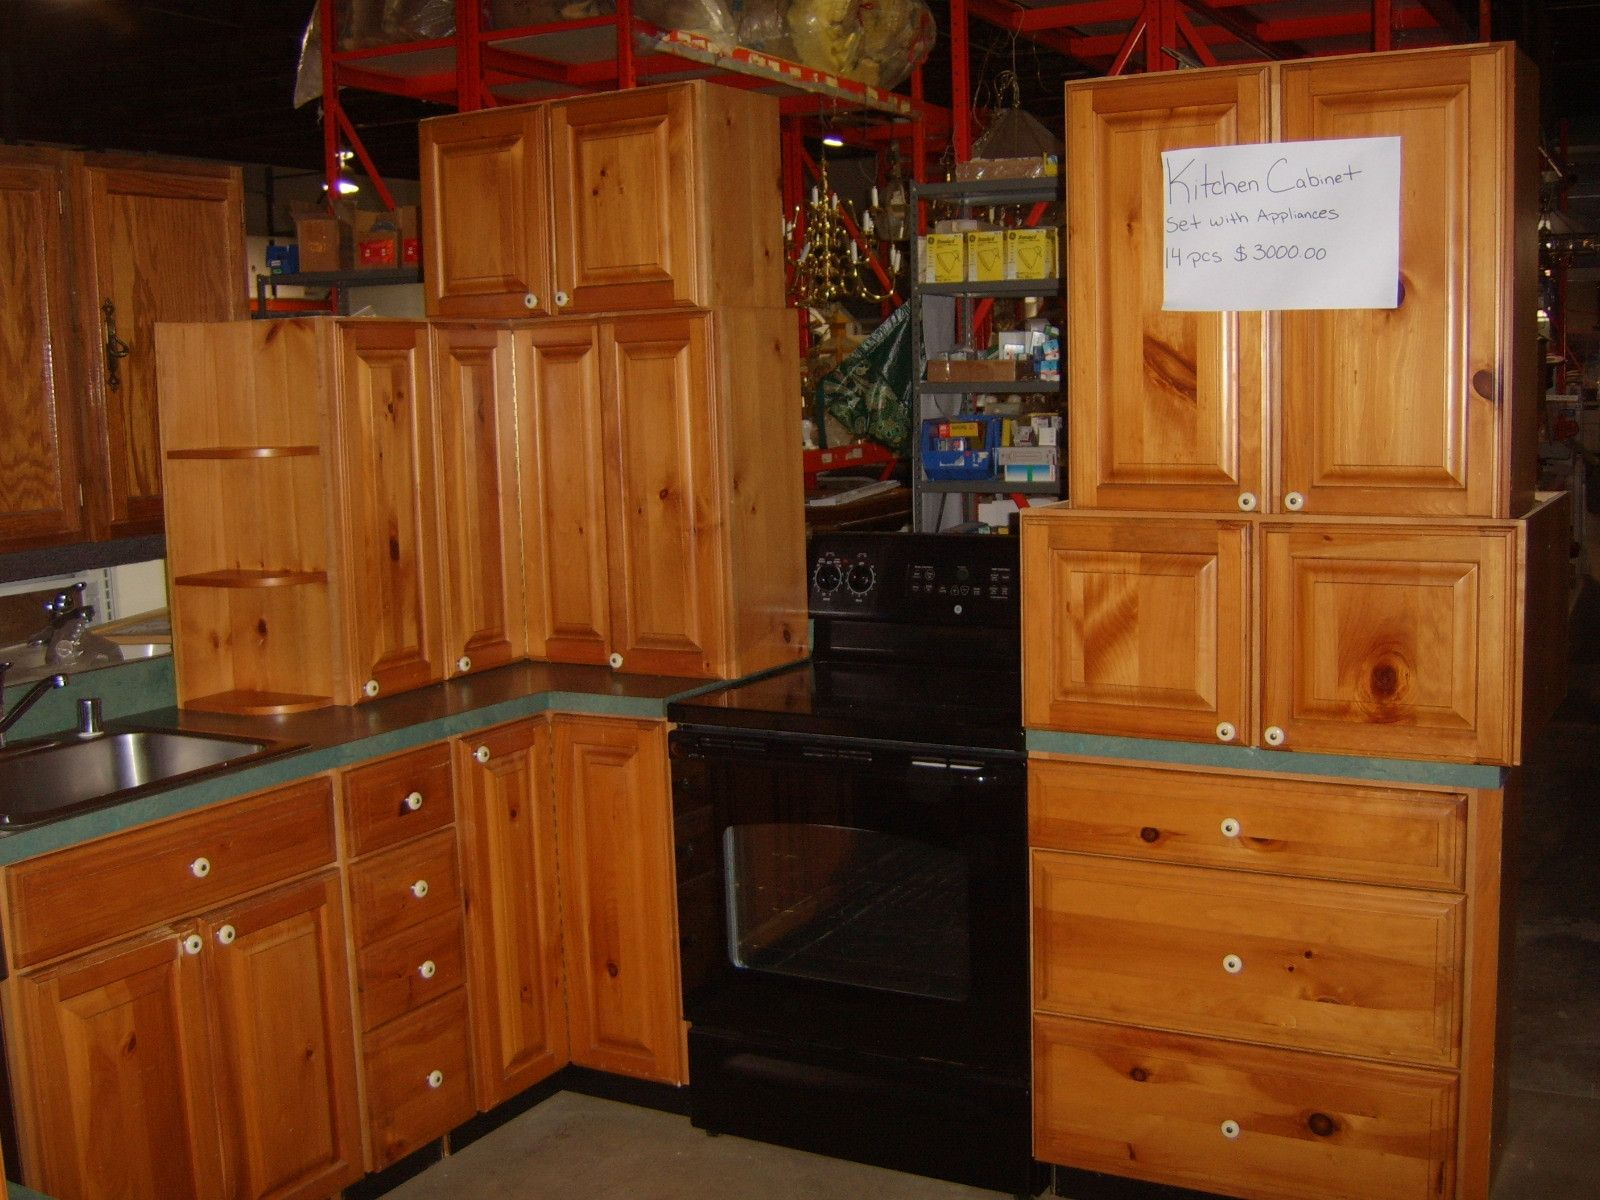 2019 Ebay Used Kitchen Cabinets For Sale Kitchen Floor Vinyl Ideas Check More At Http Kitchen Cabinets For Sale Used Kitchen Cabinets Cheap Kitchen Cabinets